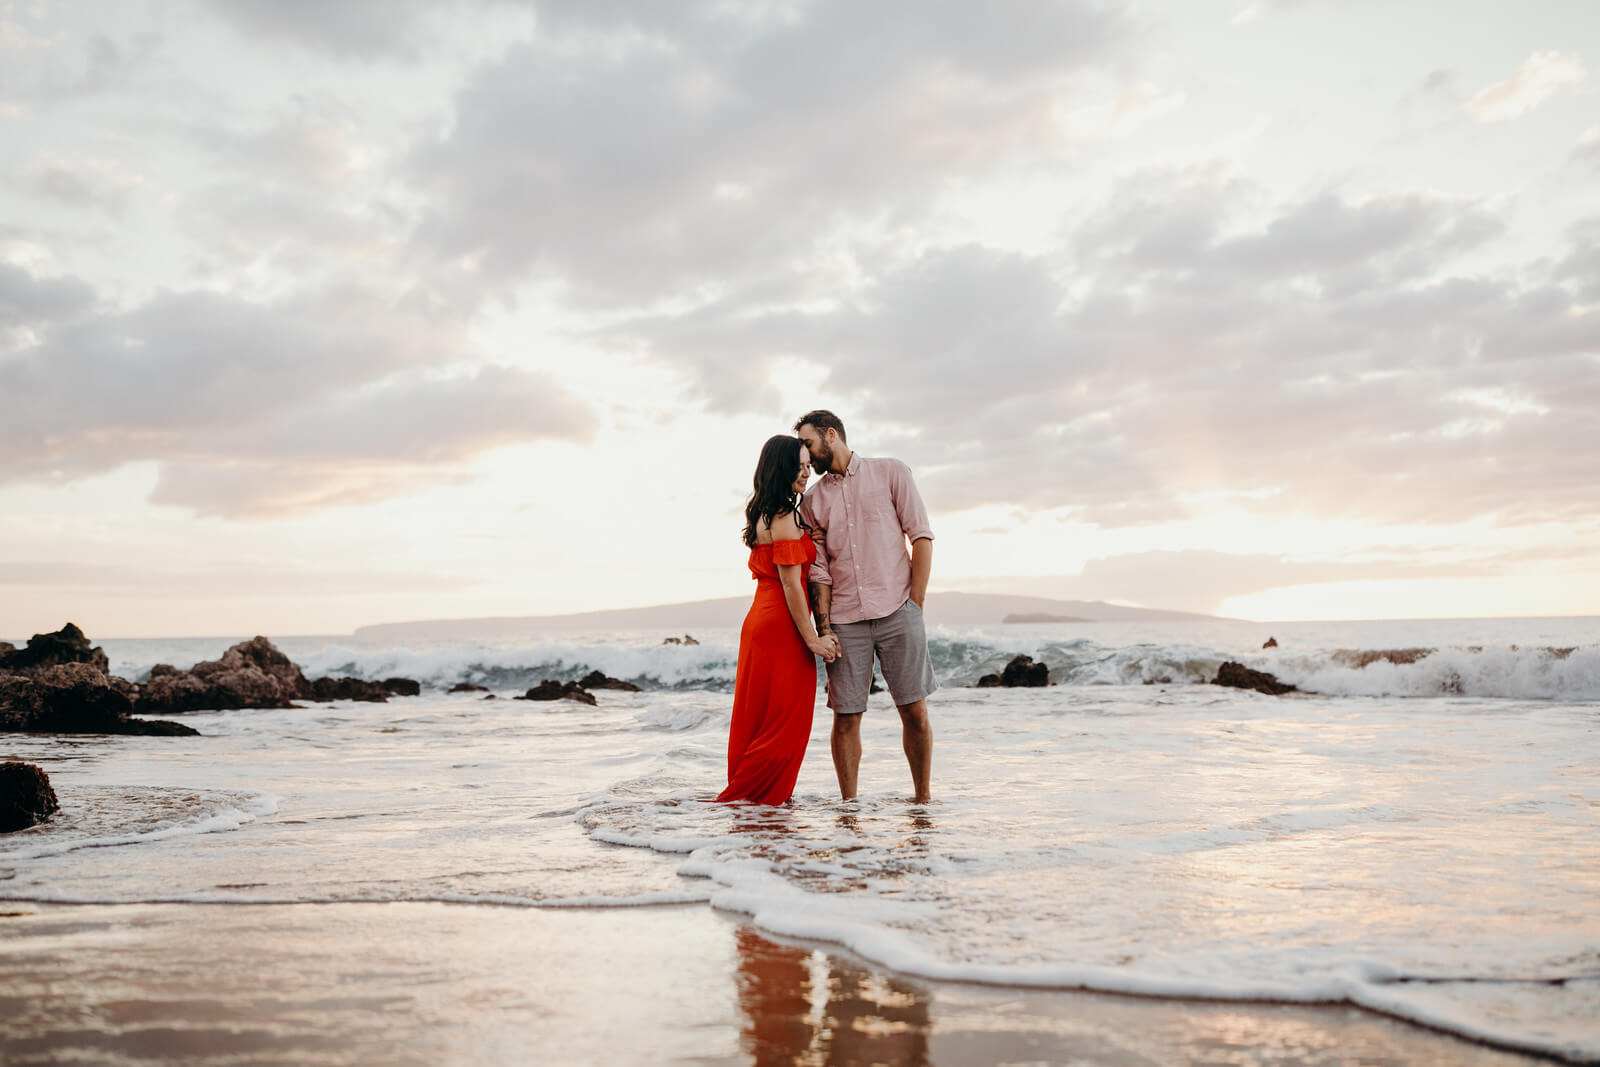 5 Top Maui Hotels for Your Honeymoon